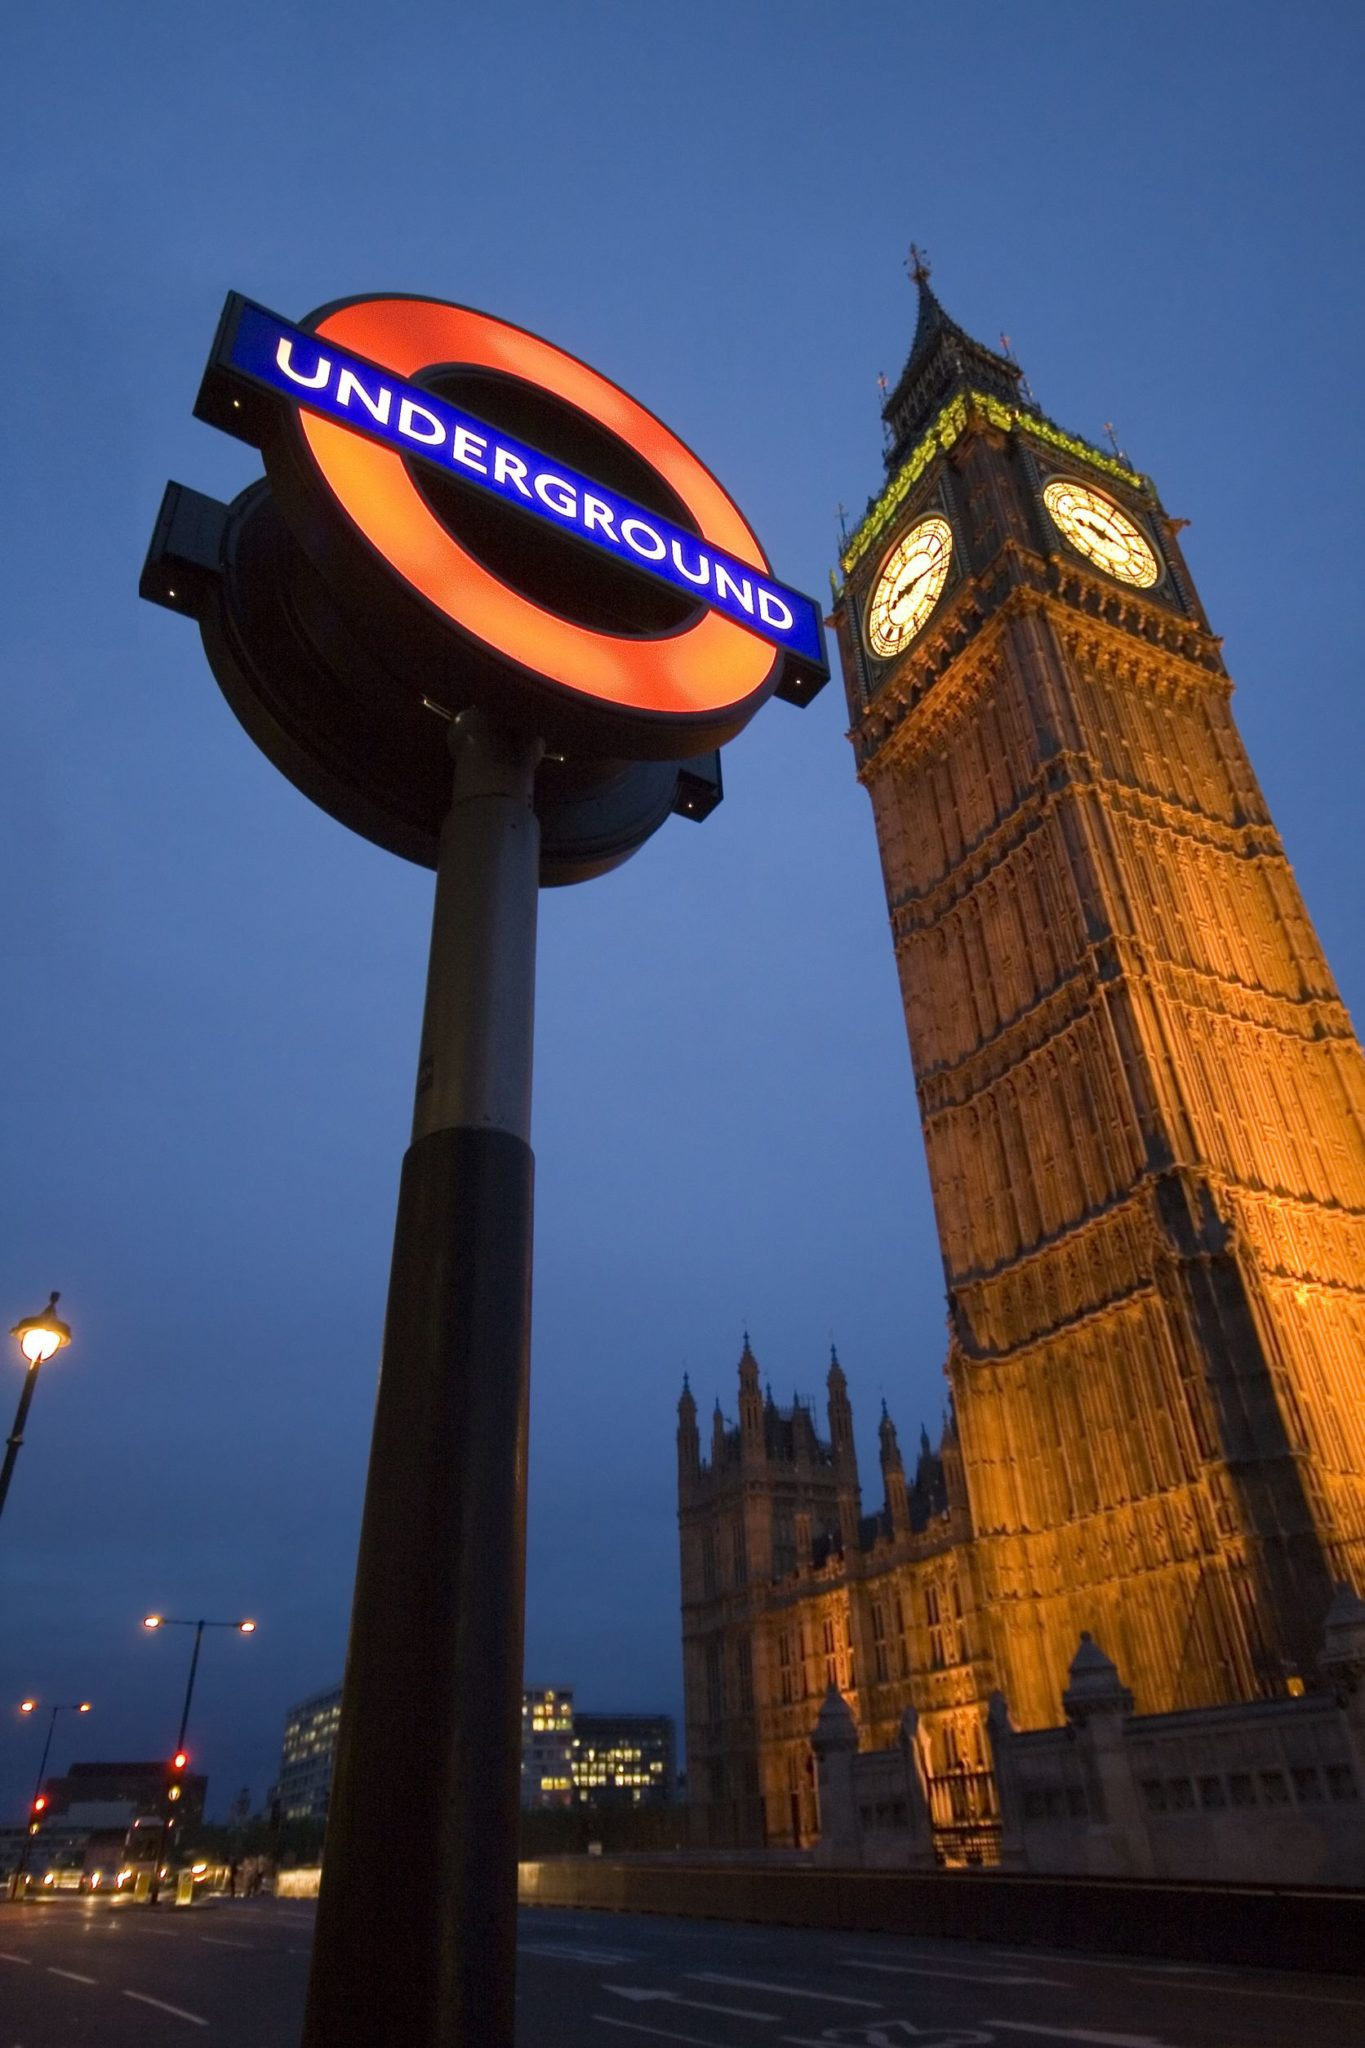 Famous Underground and Big Ben tower